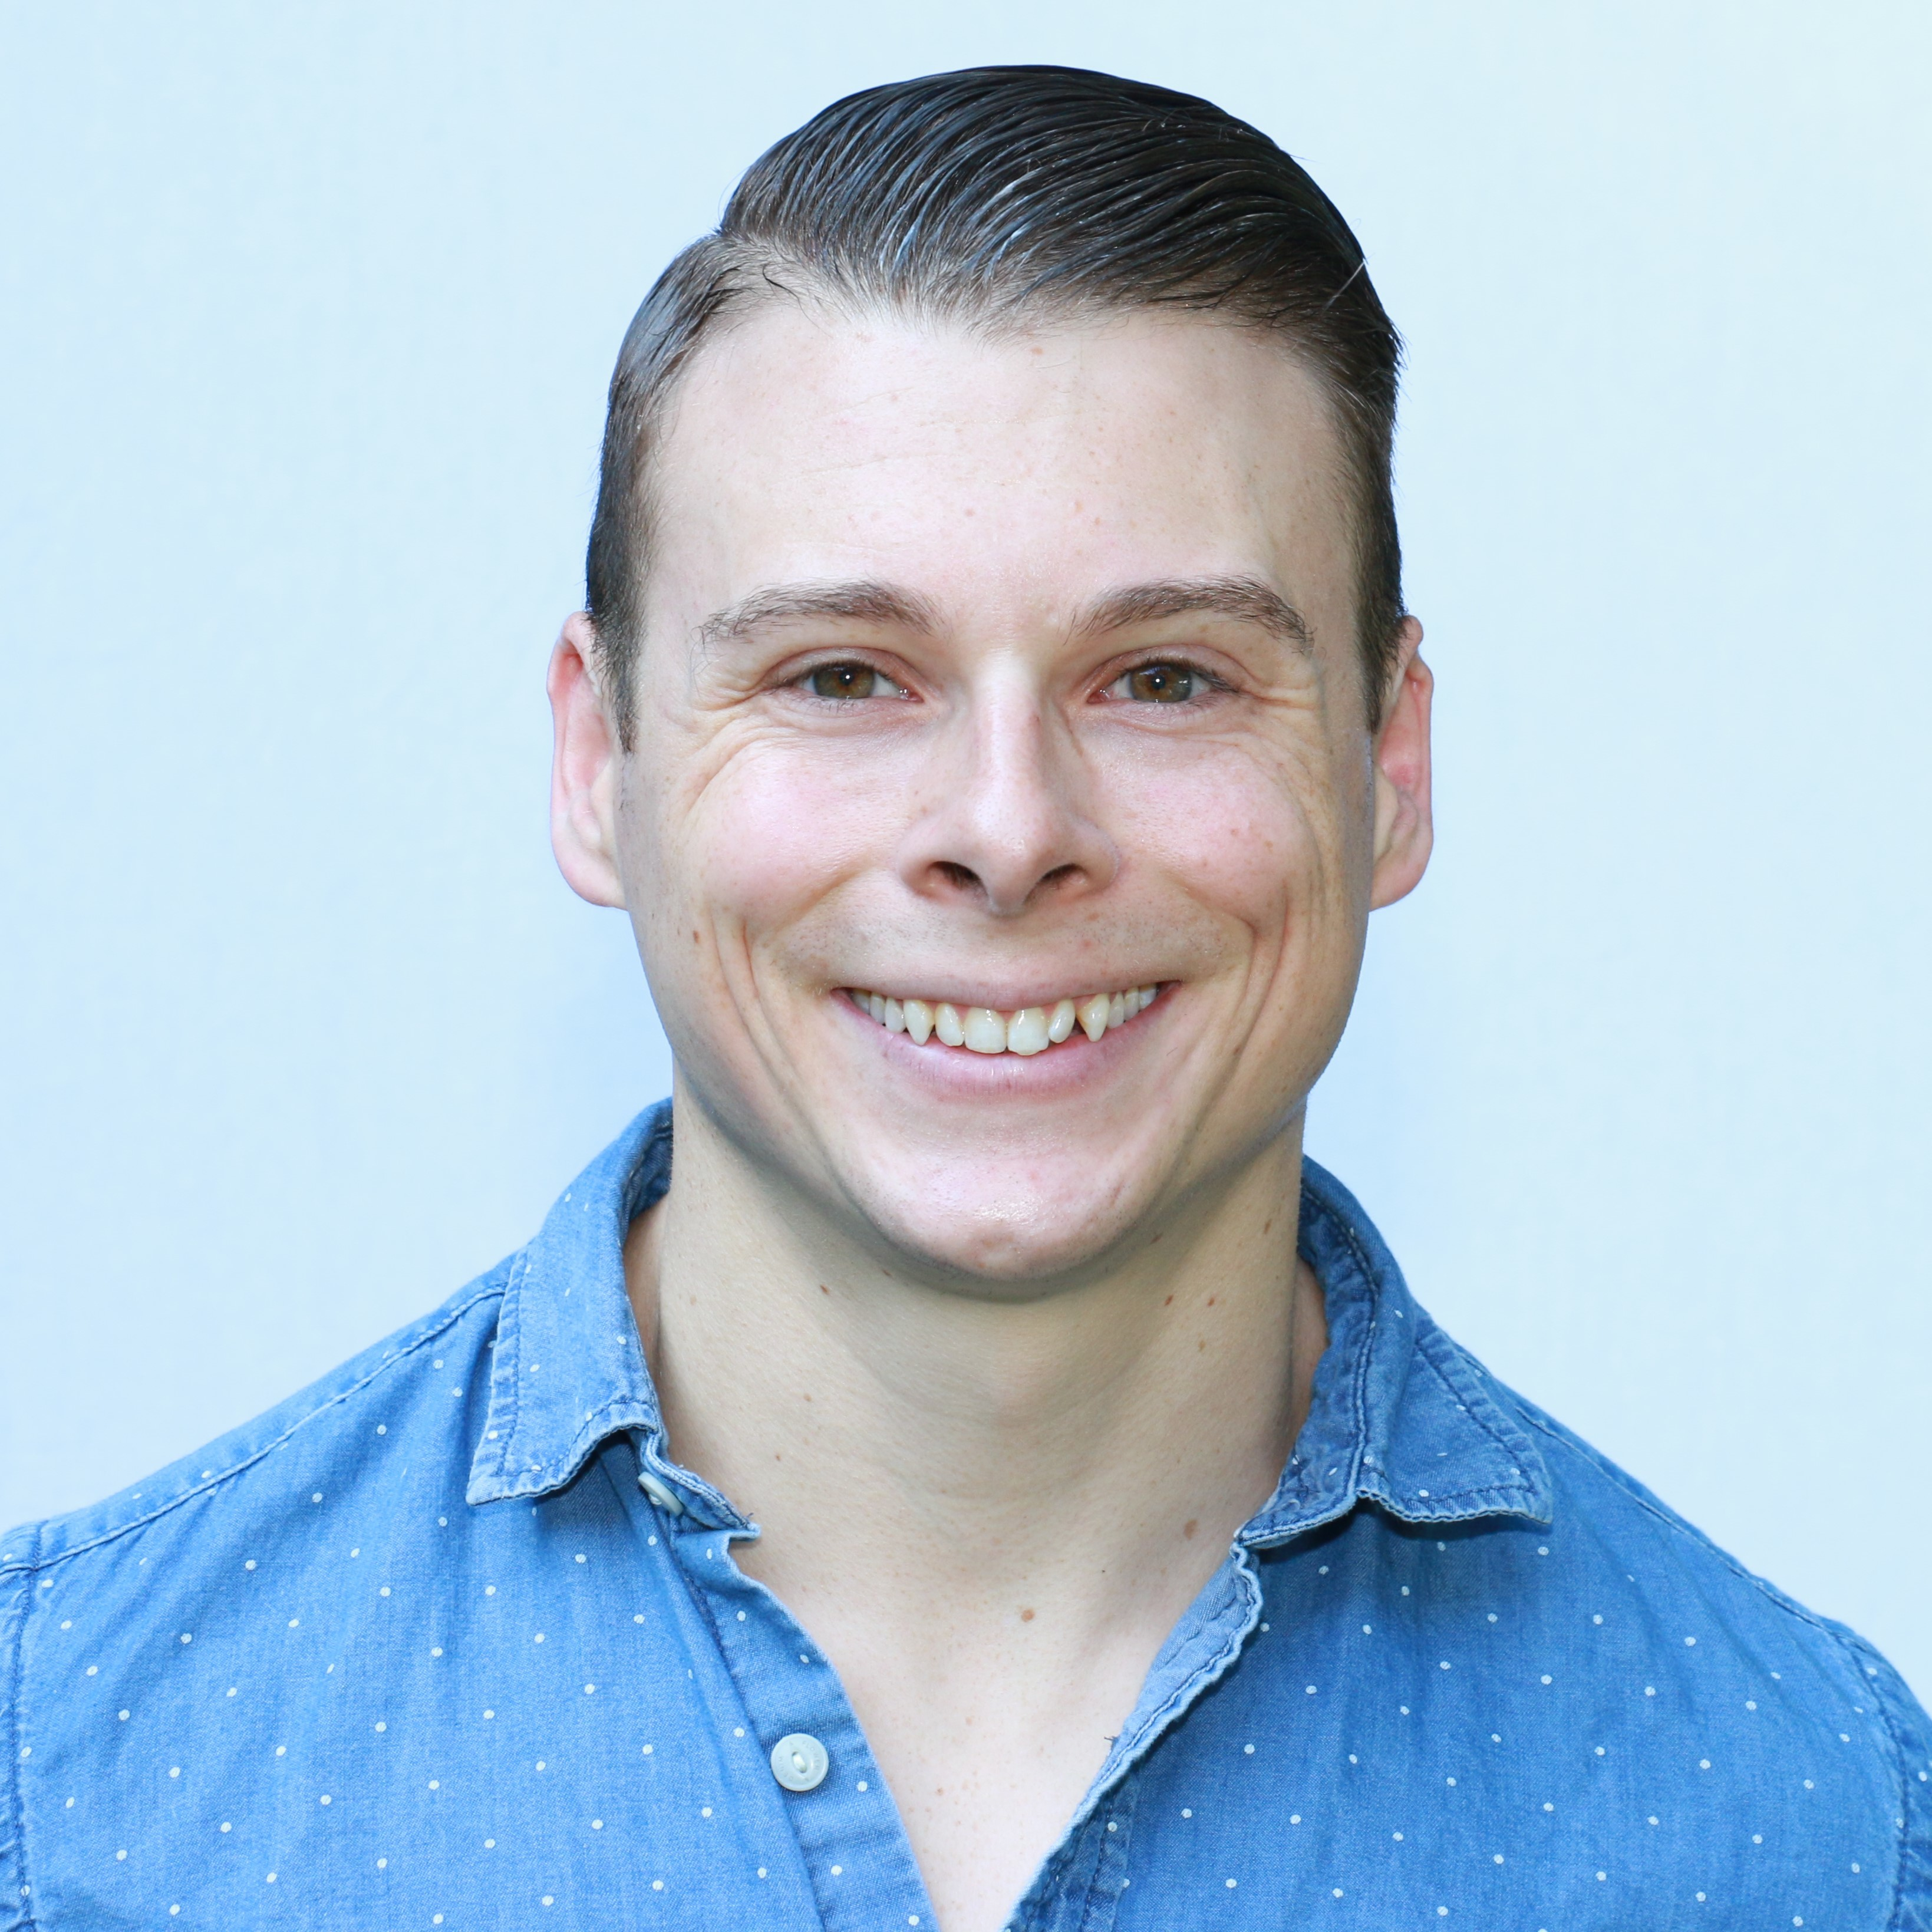 jeremy-slate-helps-business-leaders-entrepreneurs-professionals-founders-and-ceo-s-share-their-story-to-connect-with-the-audience-and-become-the-leaders-in-their-niche-ep2547_thumbnail.png